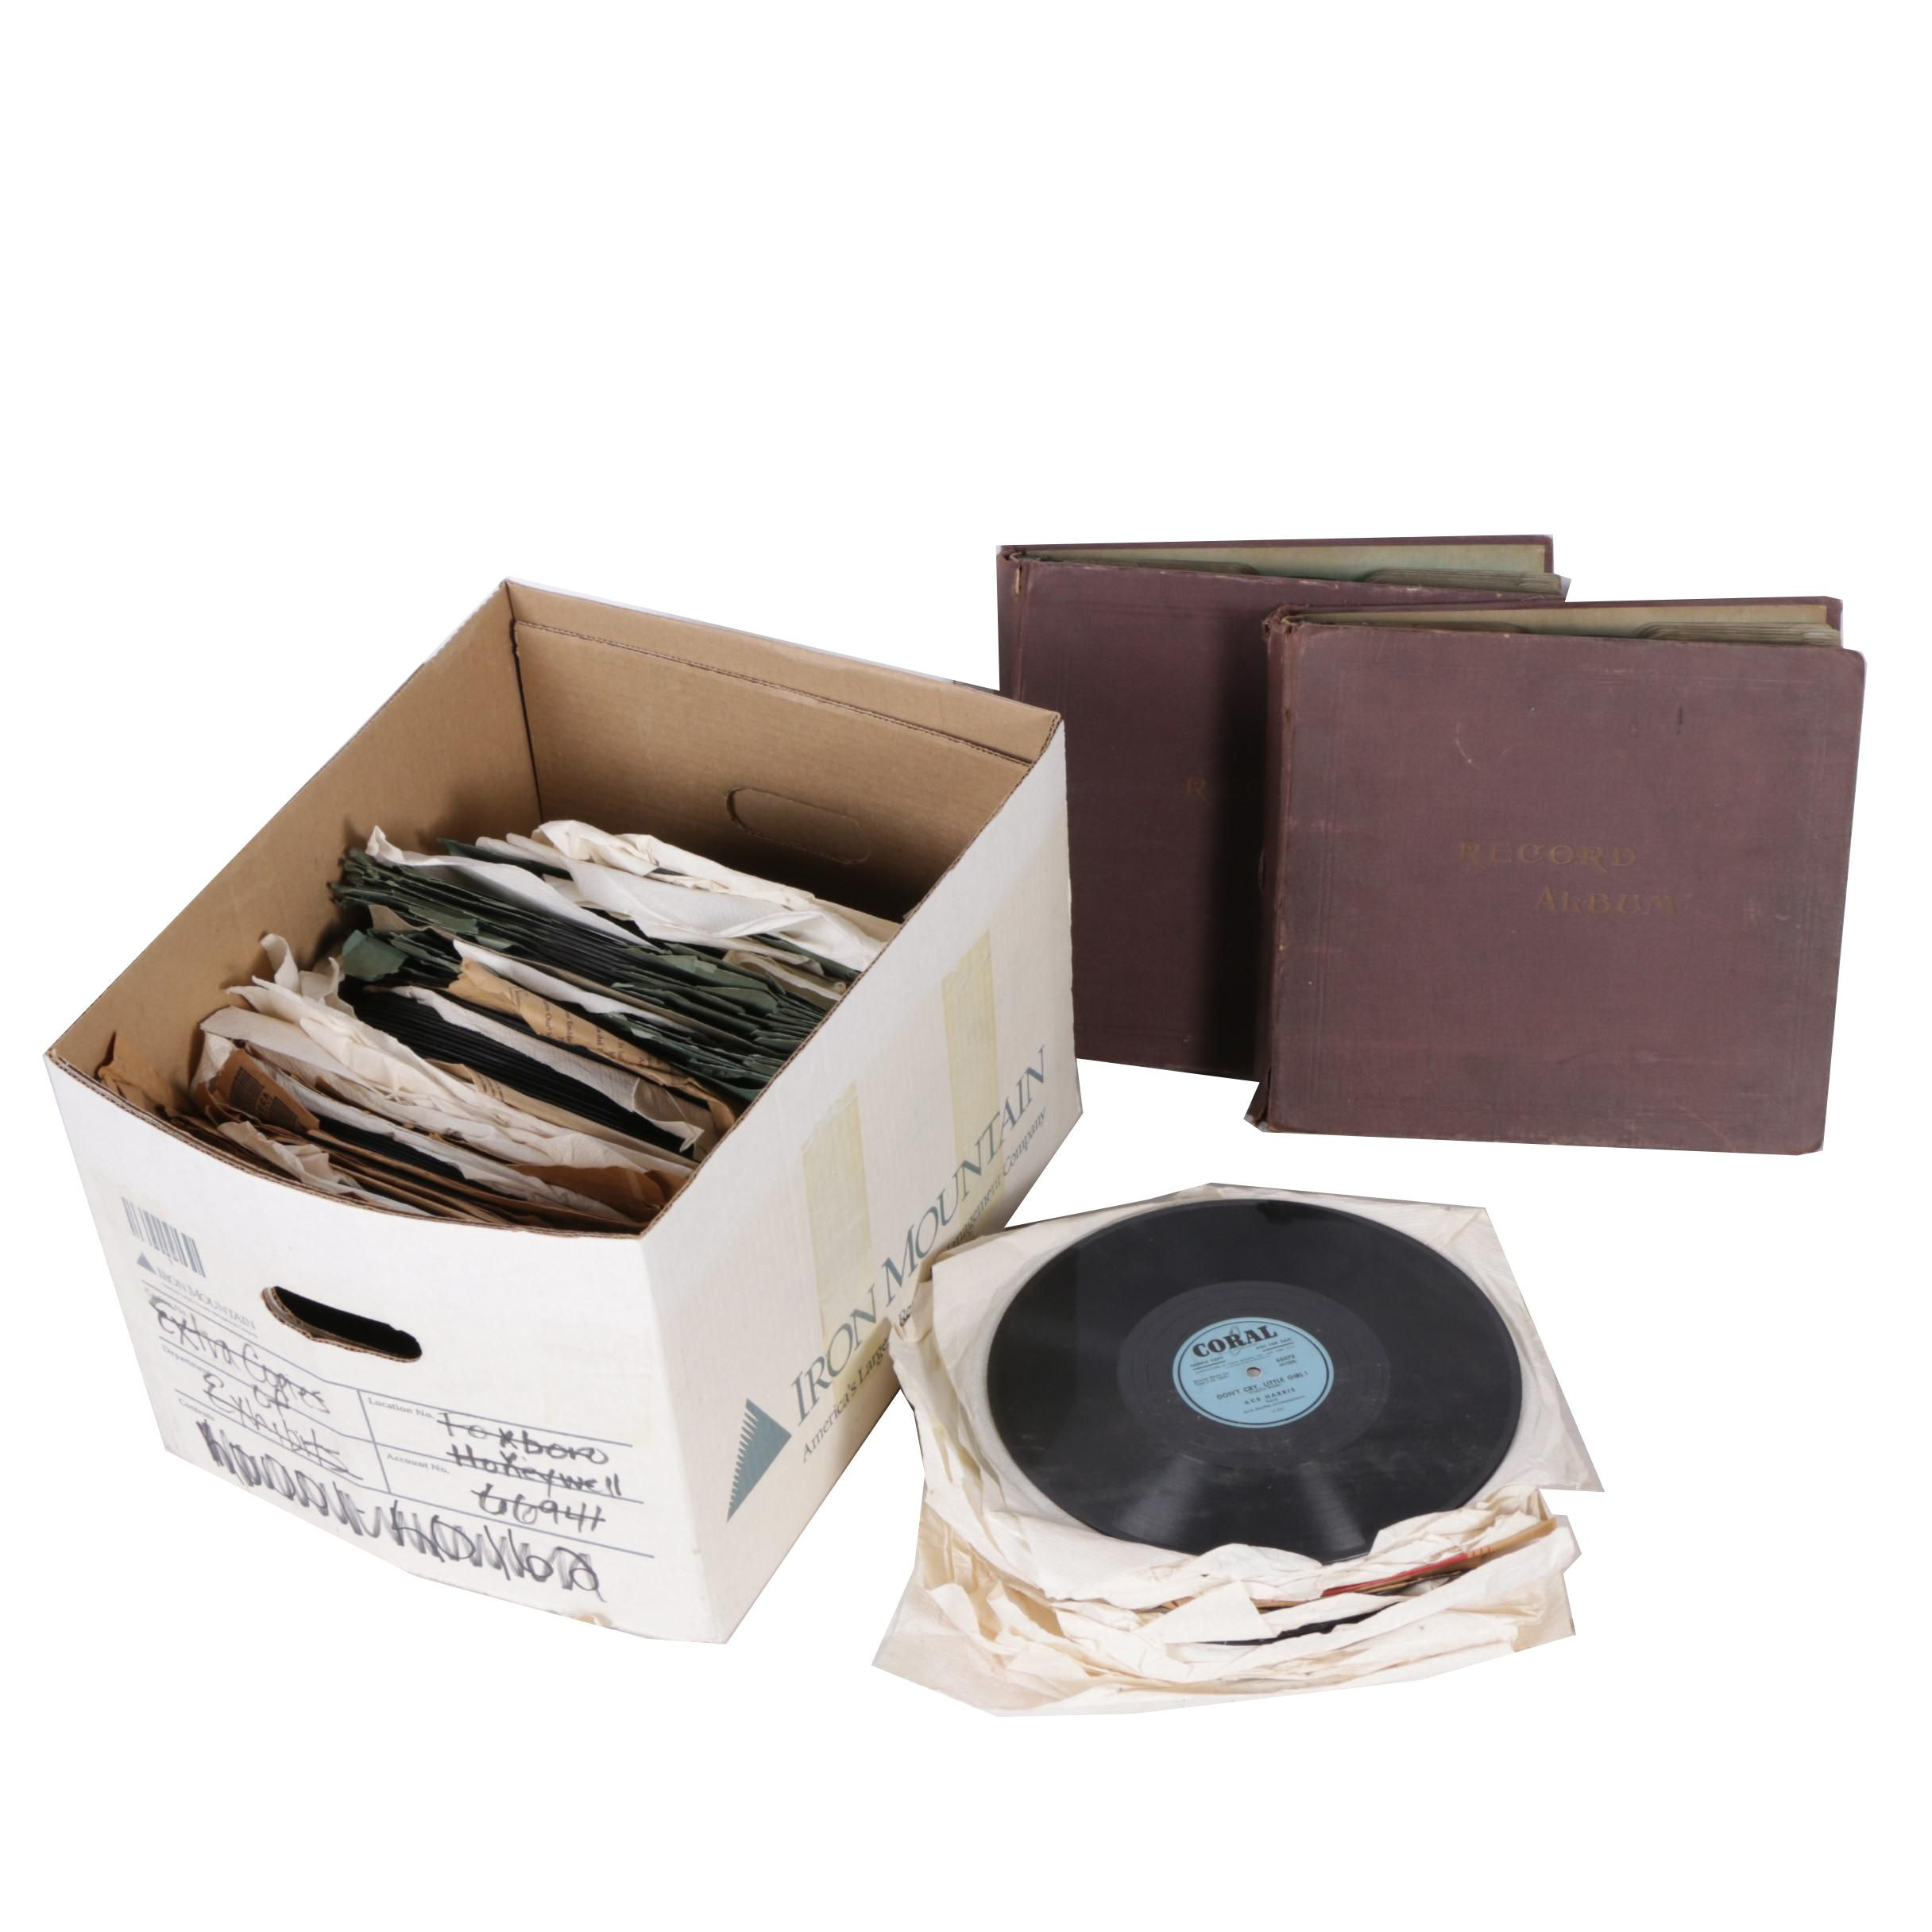 Early 20th Century Big Band, Folk, and Jazz 78 RPM Records and Storage Binders